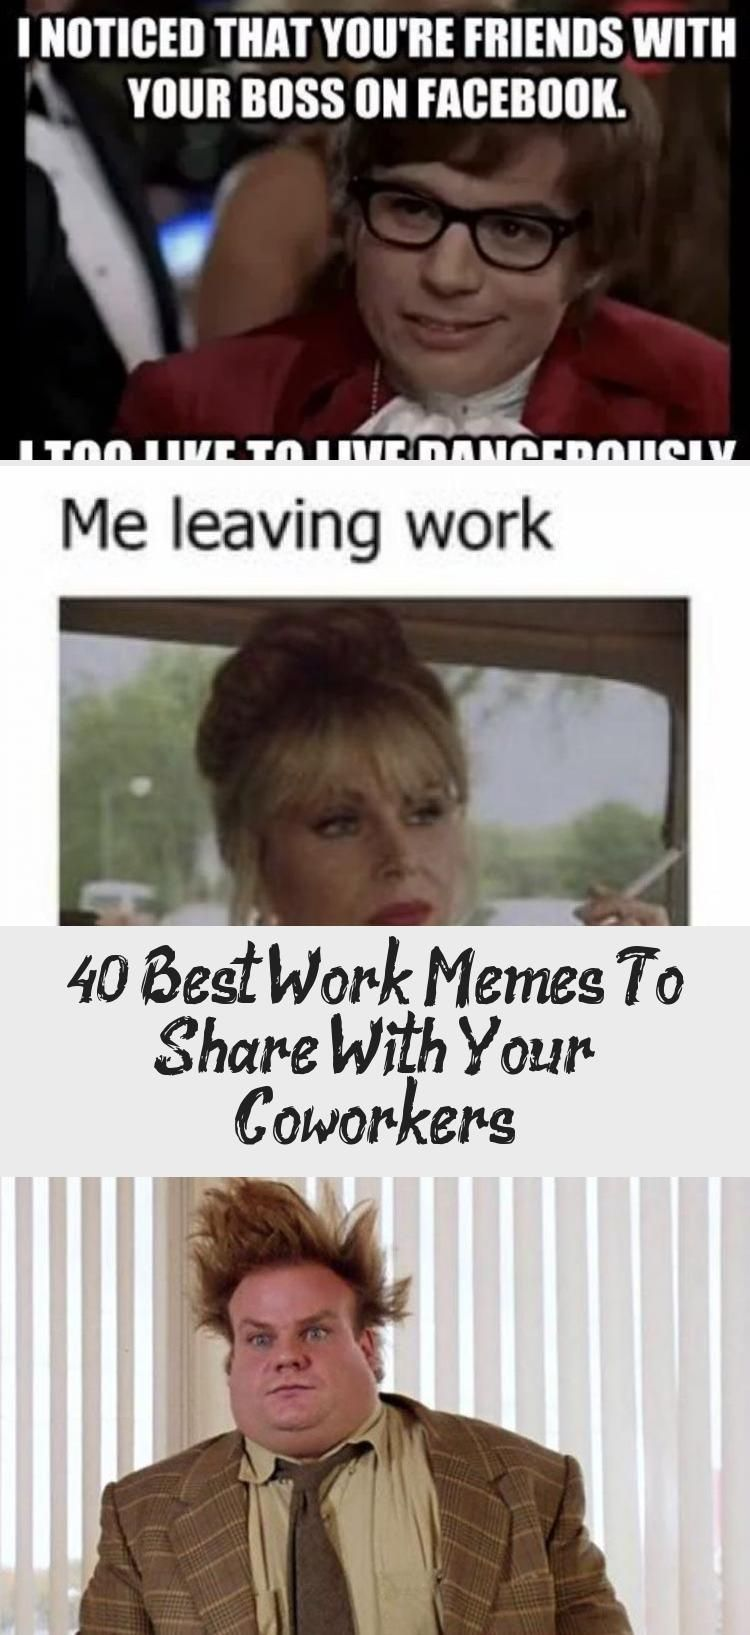 40 Best Work Memes To Share With Your Co Workers Funny Memes About Work Funny Coworker Memes Job Memes